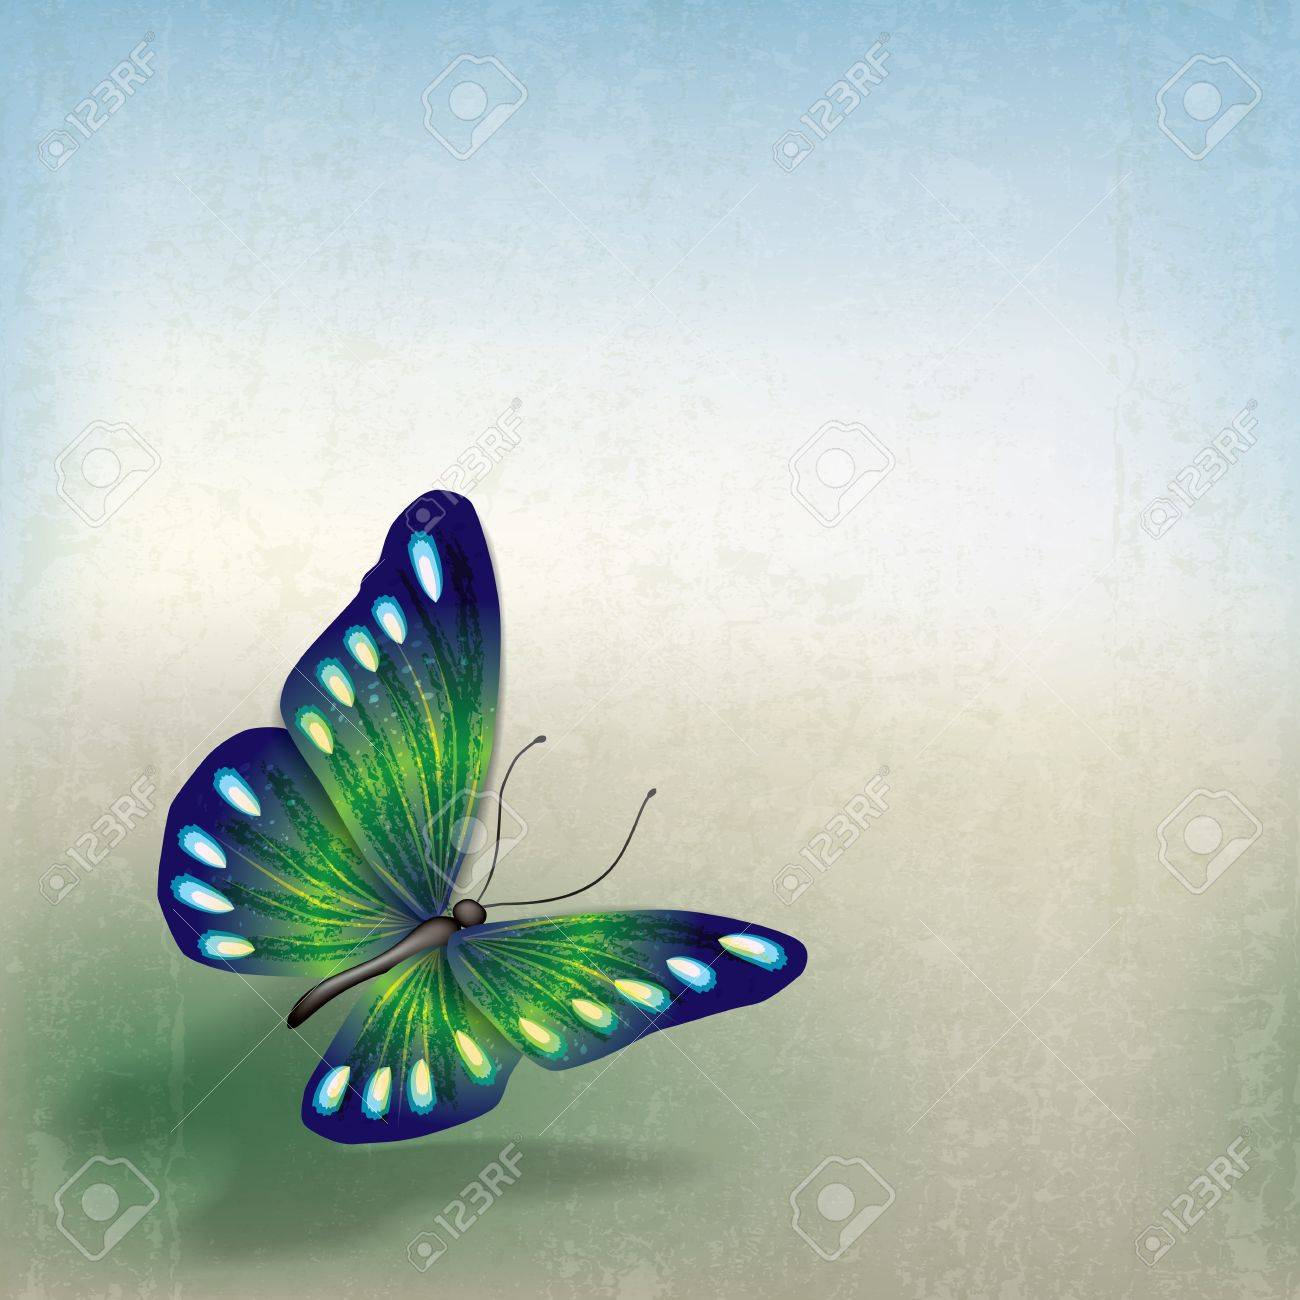 abstract grunge background with butterfly on gtay Stock Vector - 18525262